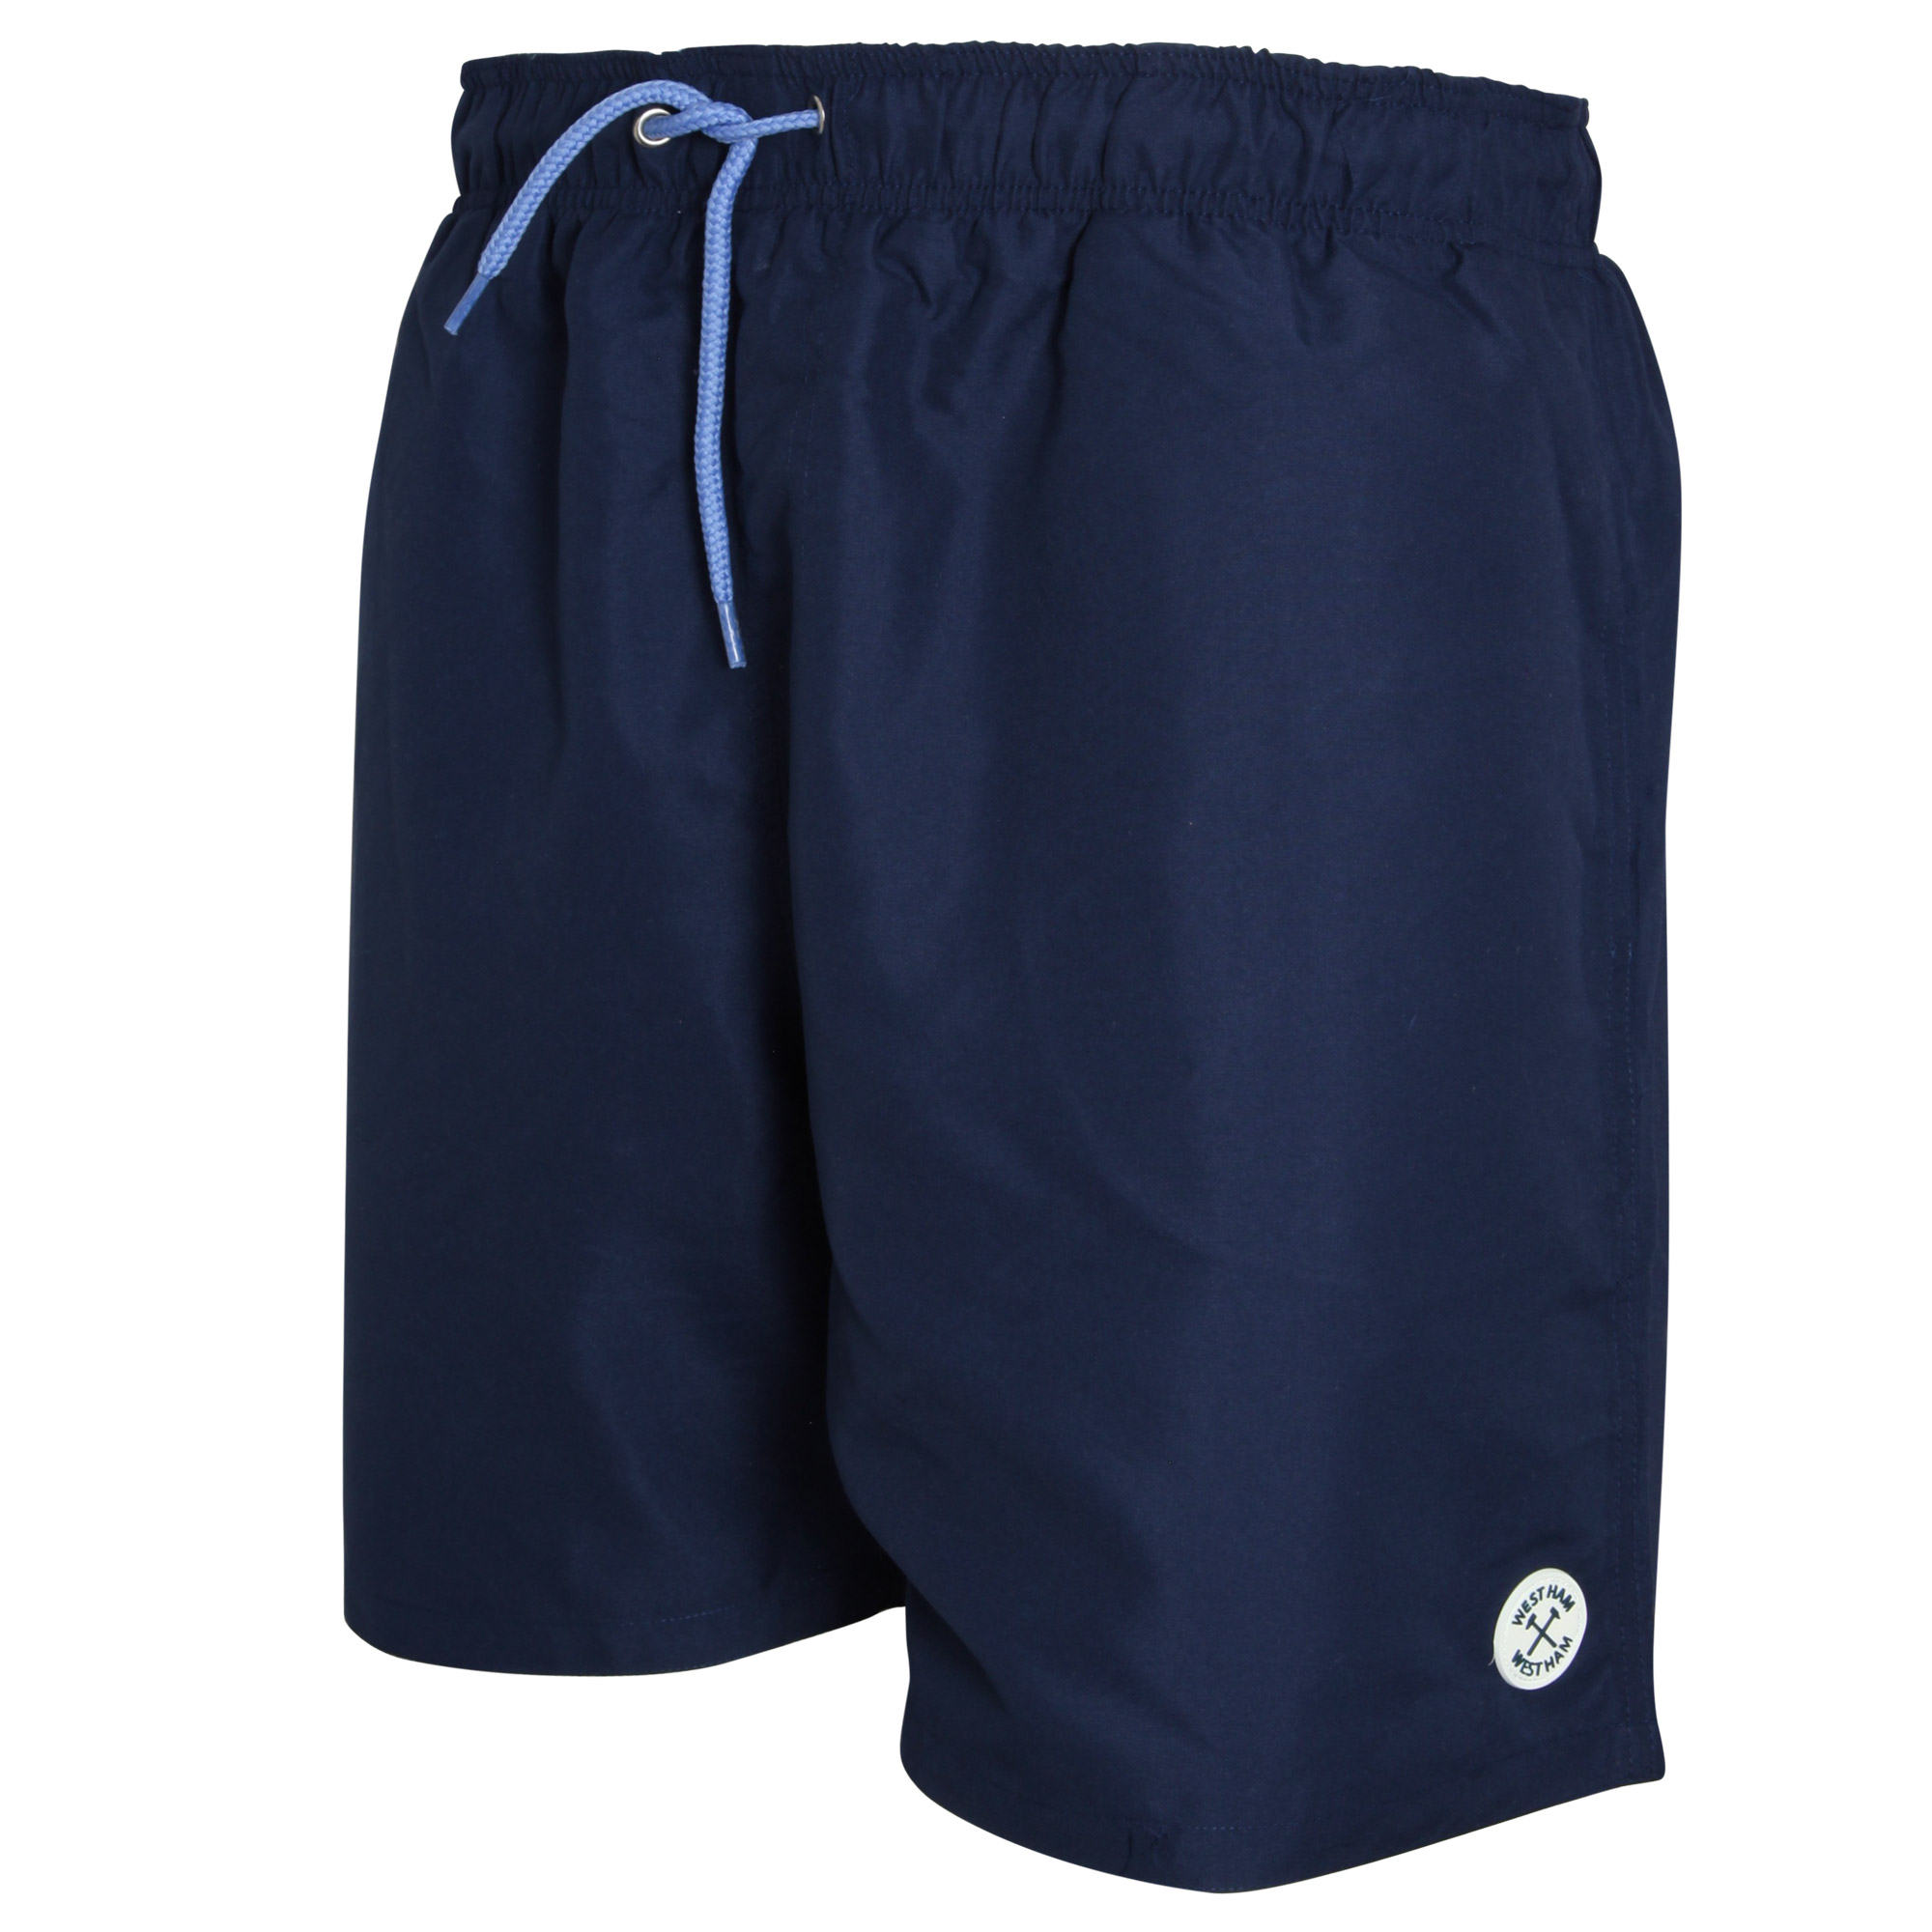 NAVY & SKY BLUE SWIM SHORTS